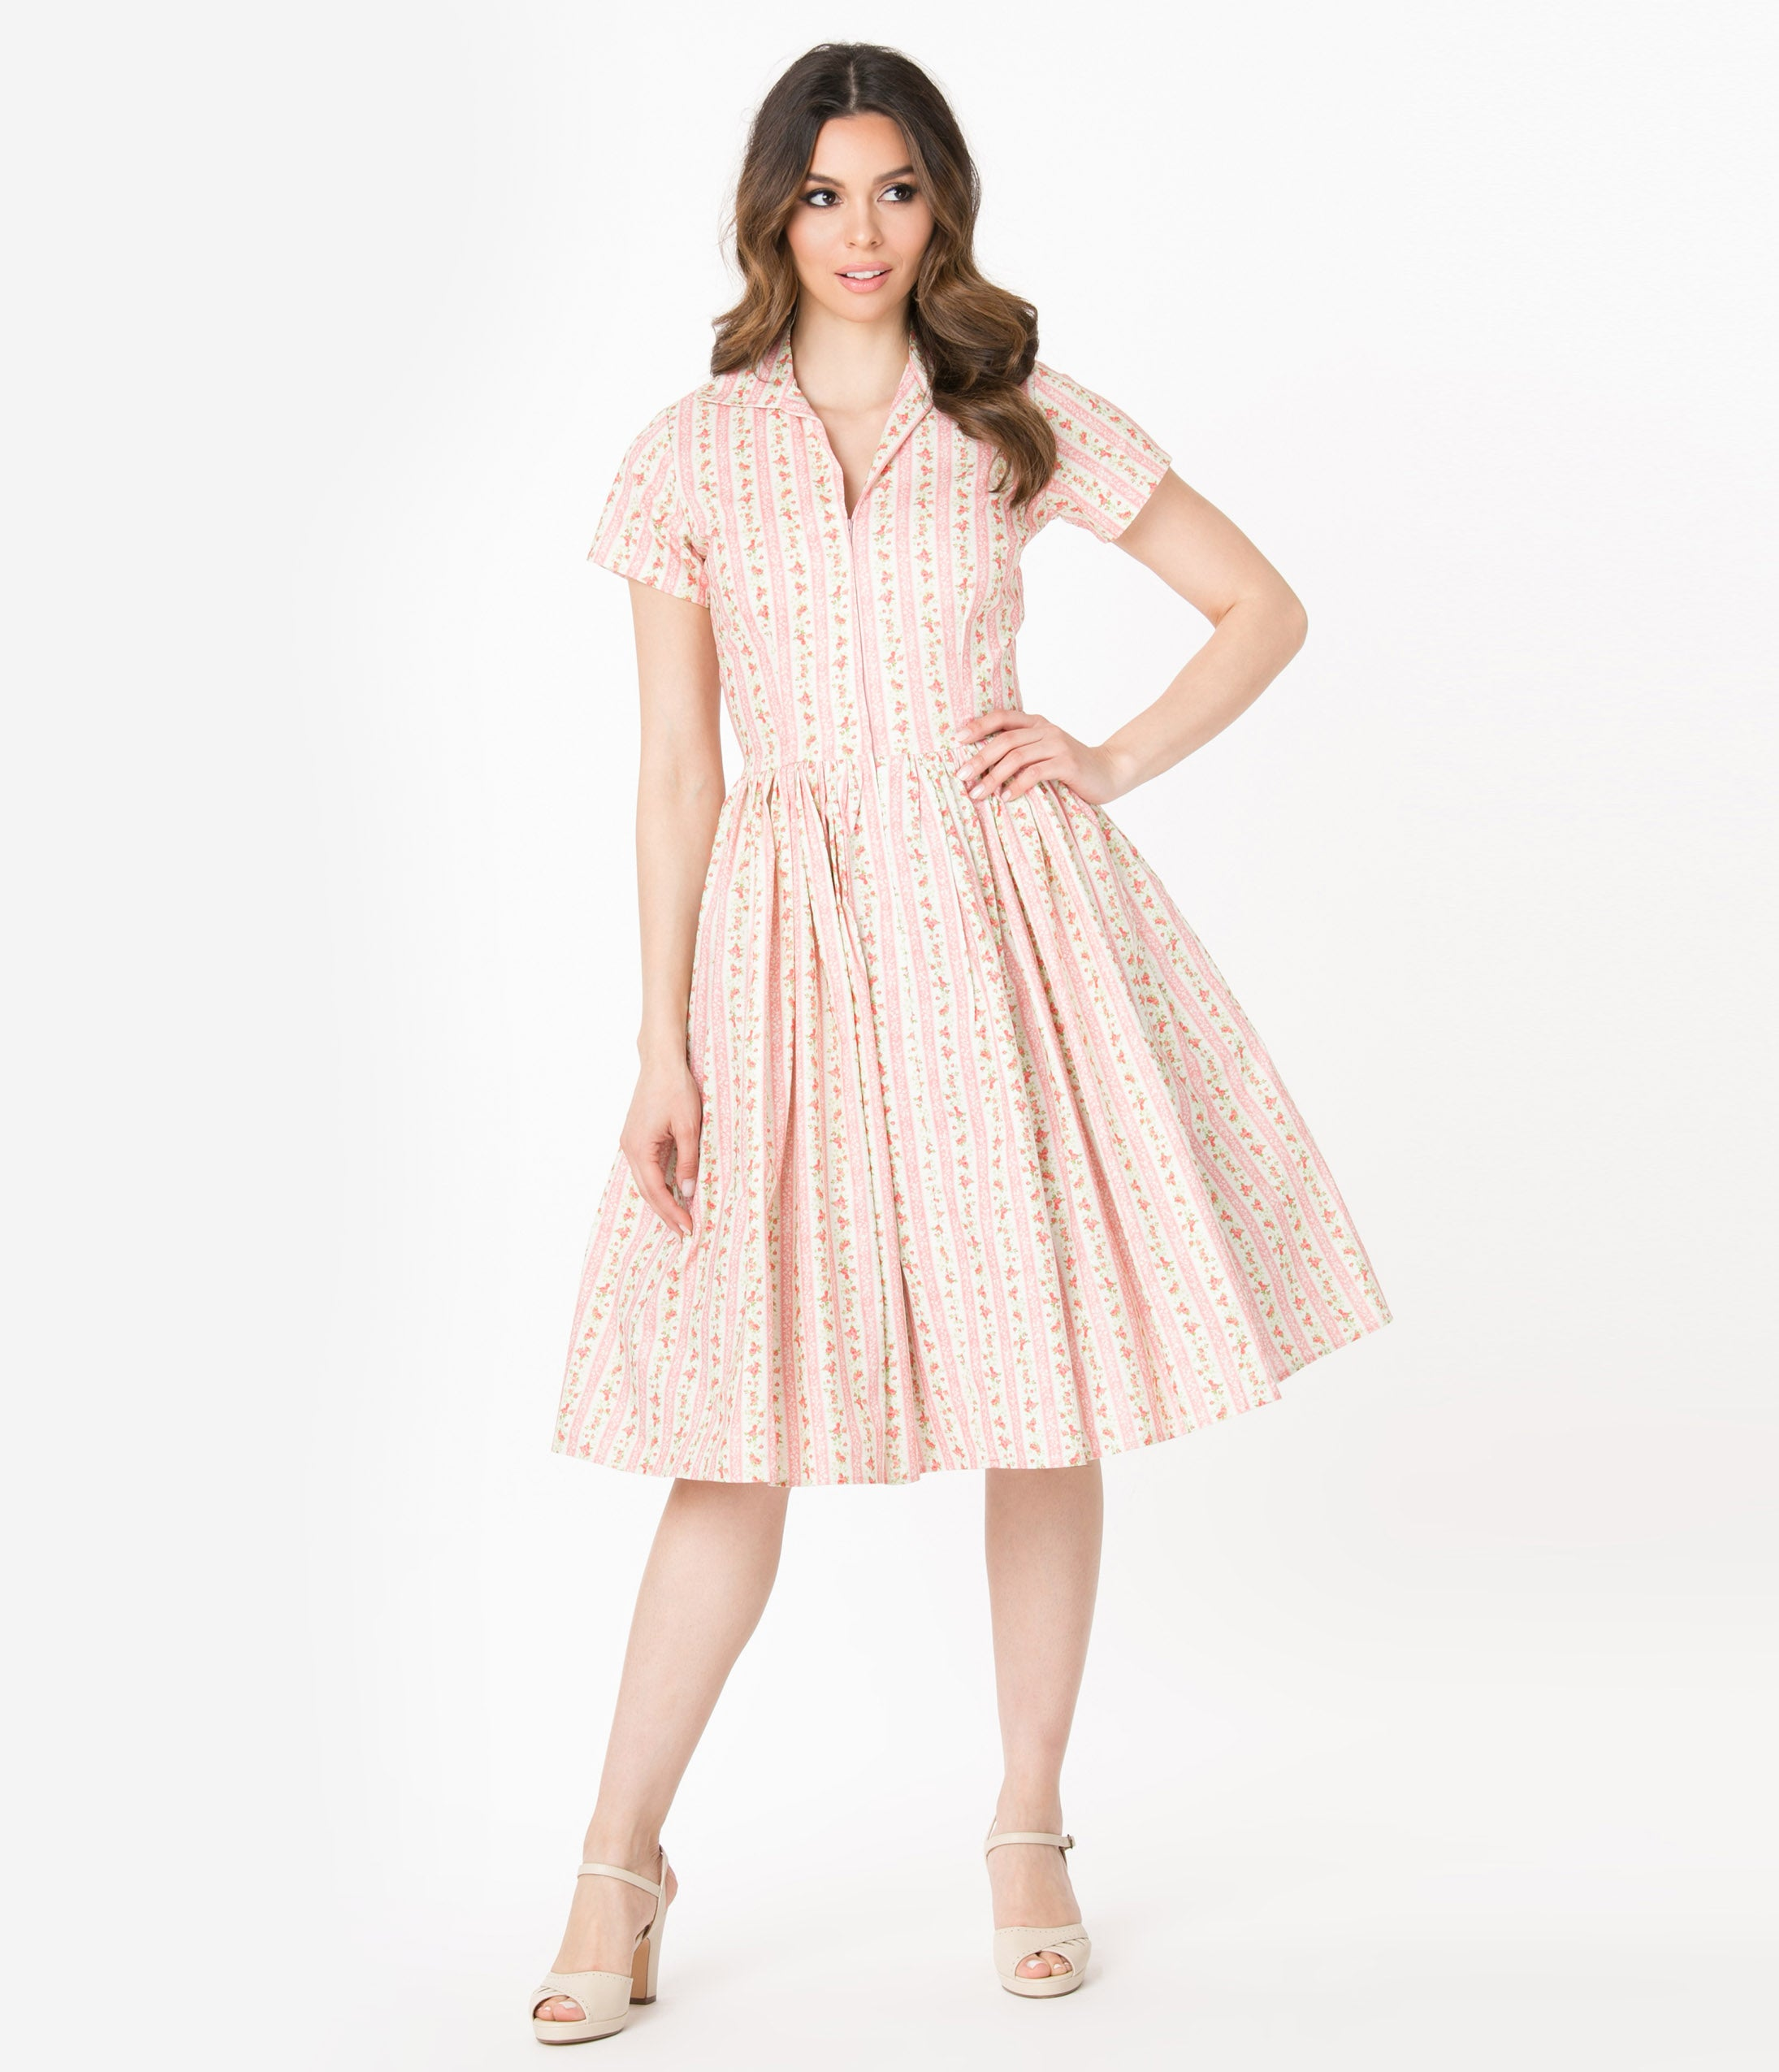 Fifties Dresses : 1950s Style Swing to Wiggle Dresses Bernie Dexter 1950S Pink Striped Wallflower Print Francis Swing Dress $158.00 AT vintagedancer.com